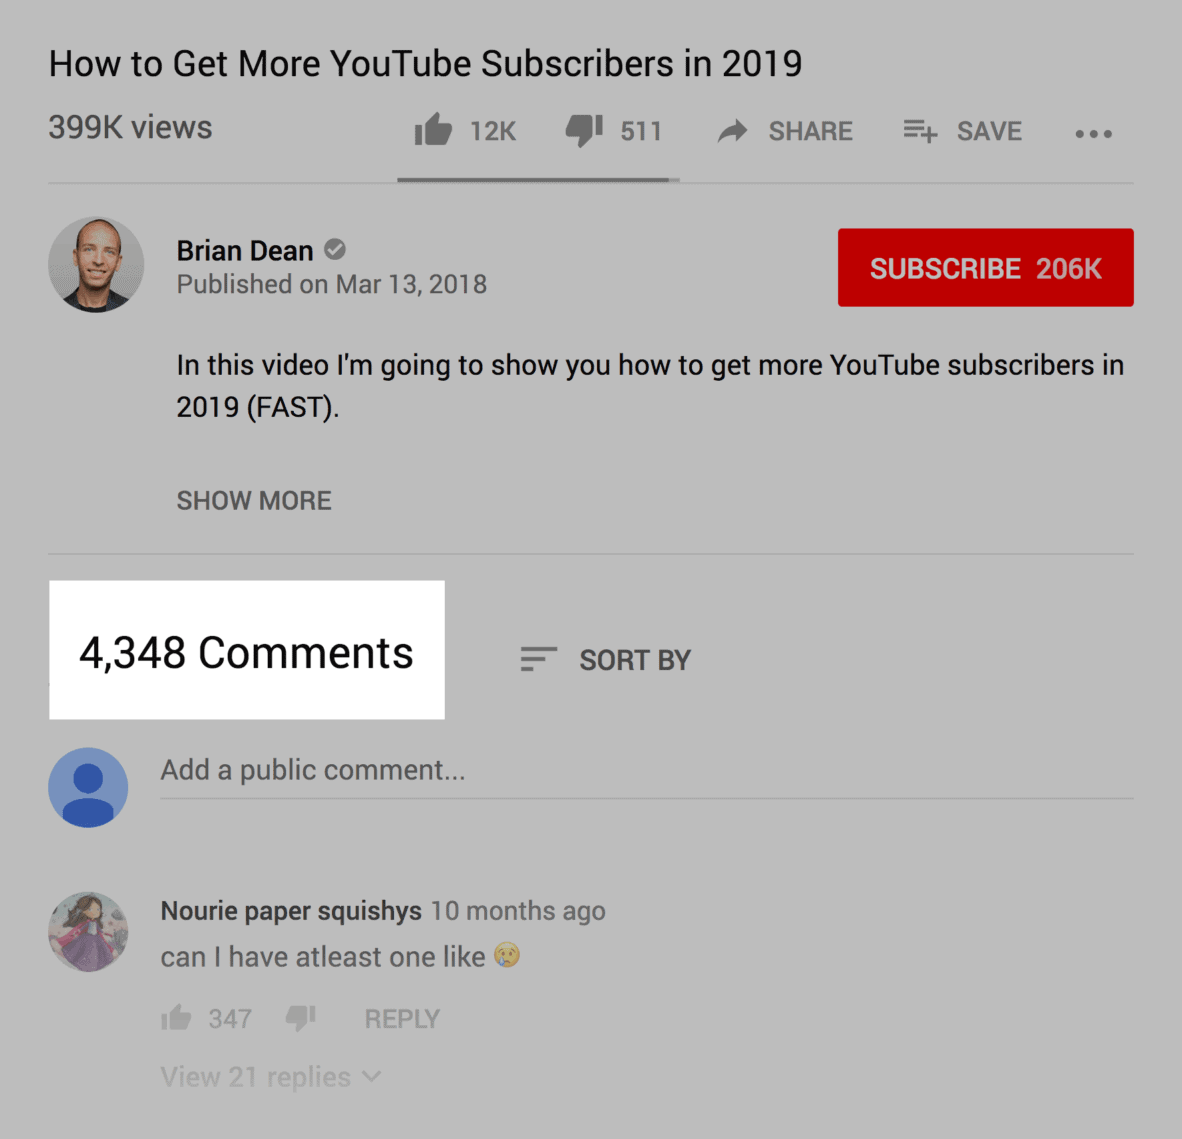 Video comments